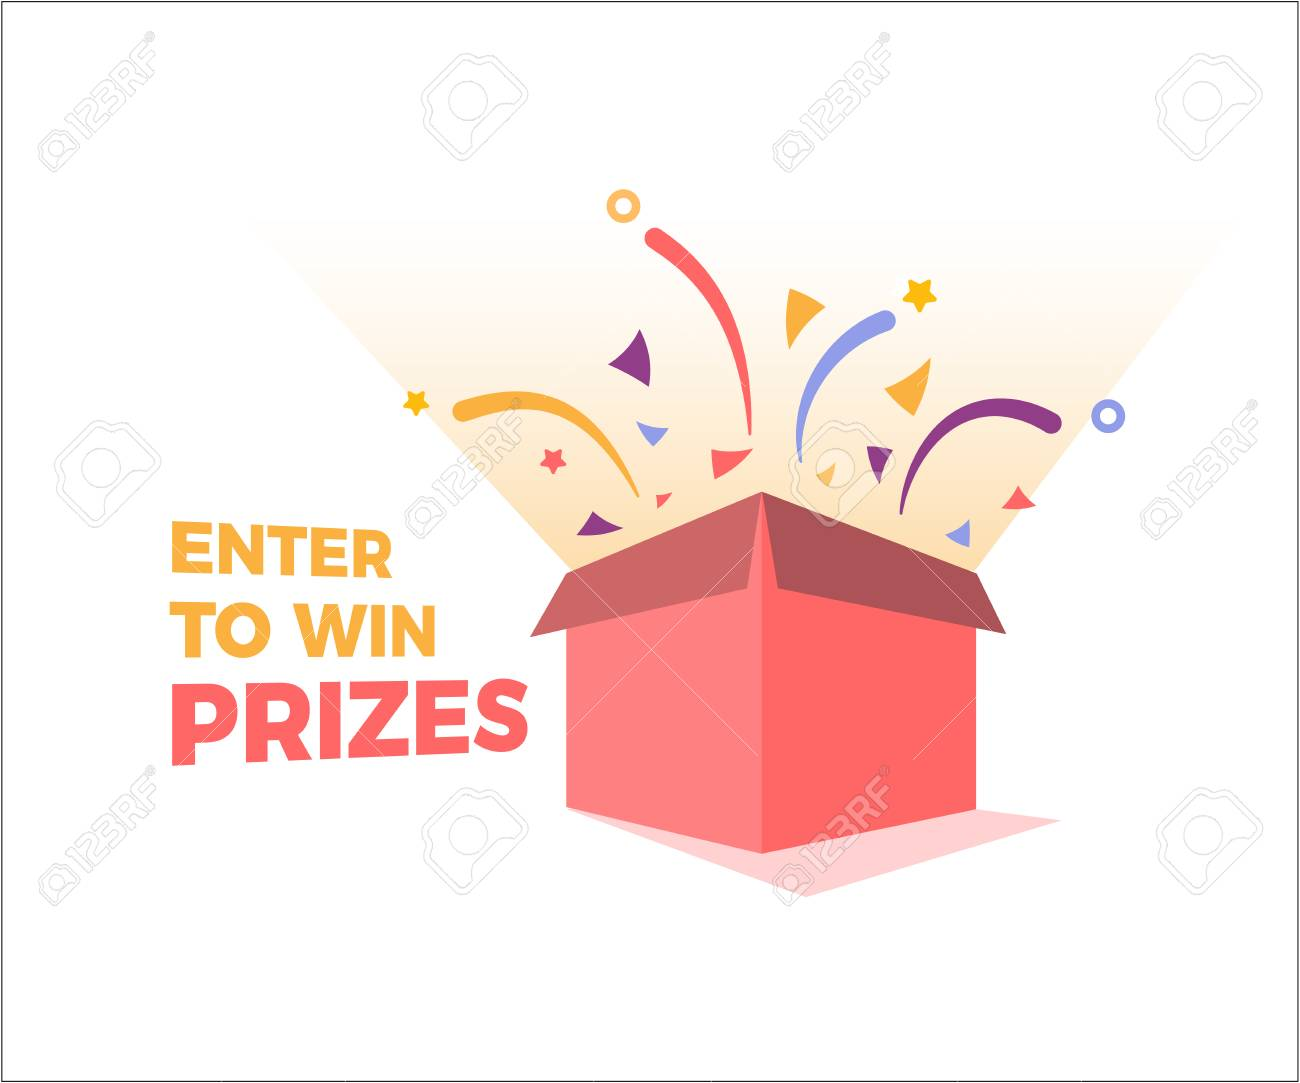 Prize box opening and exploding with fireworks and confetti. Enter to win prizes design. Vector illustration - 97100472